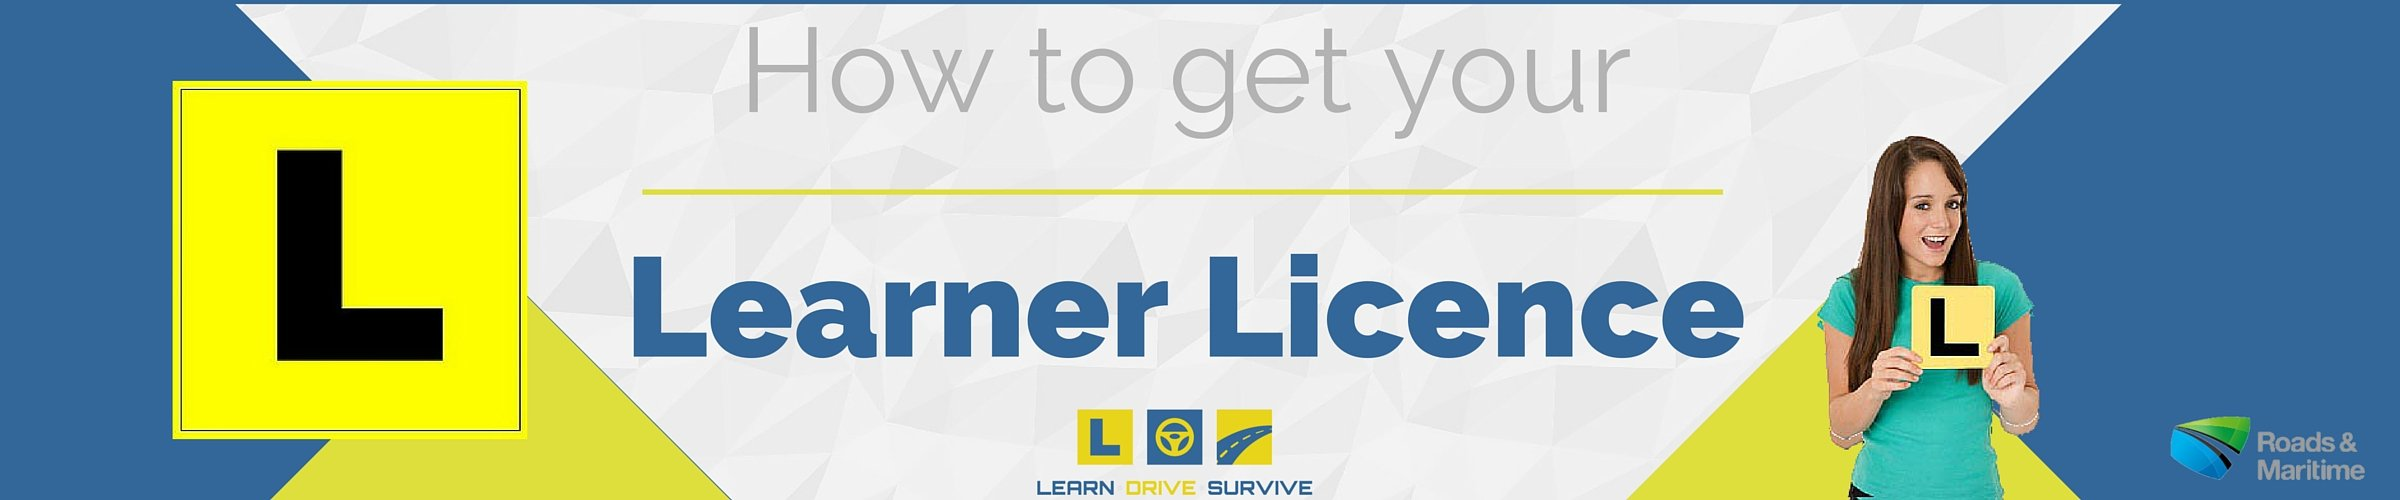 How to get your learner licence or learners permit